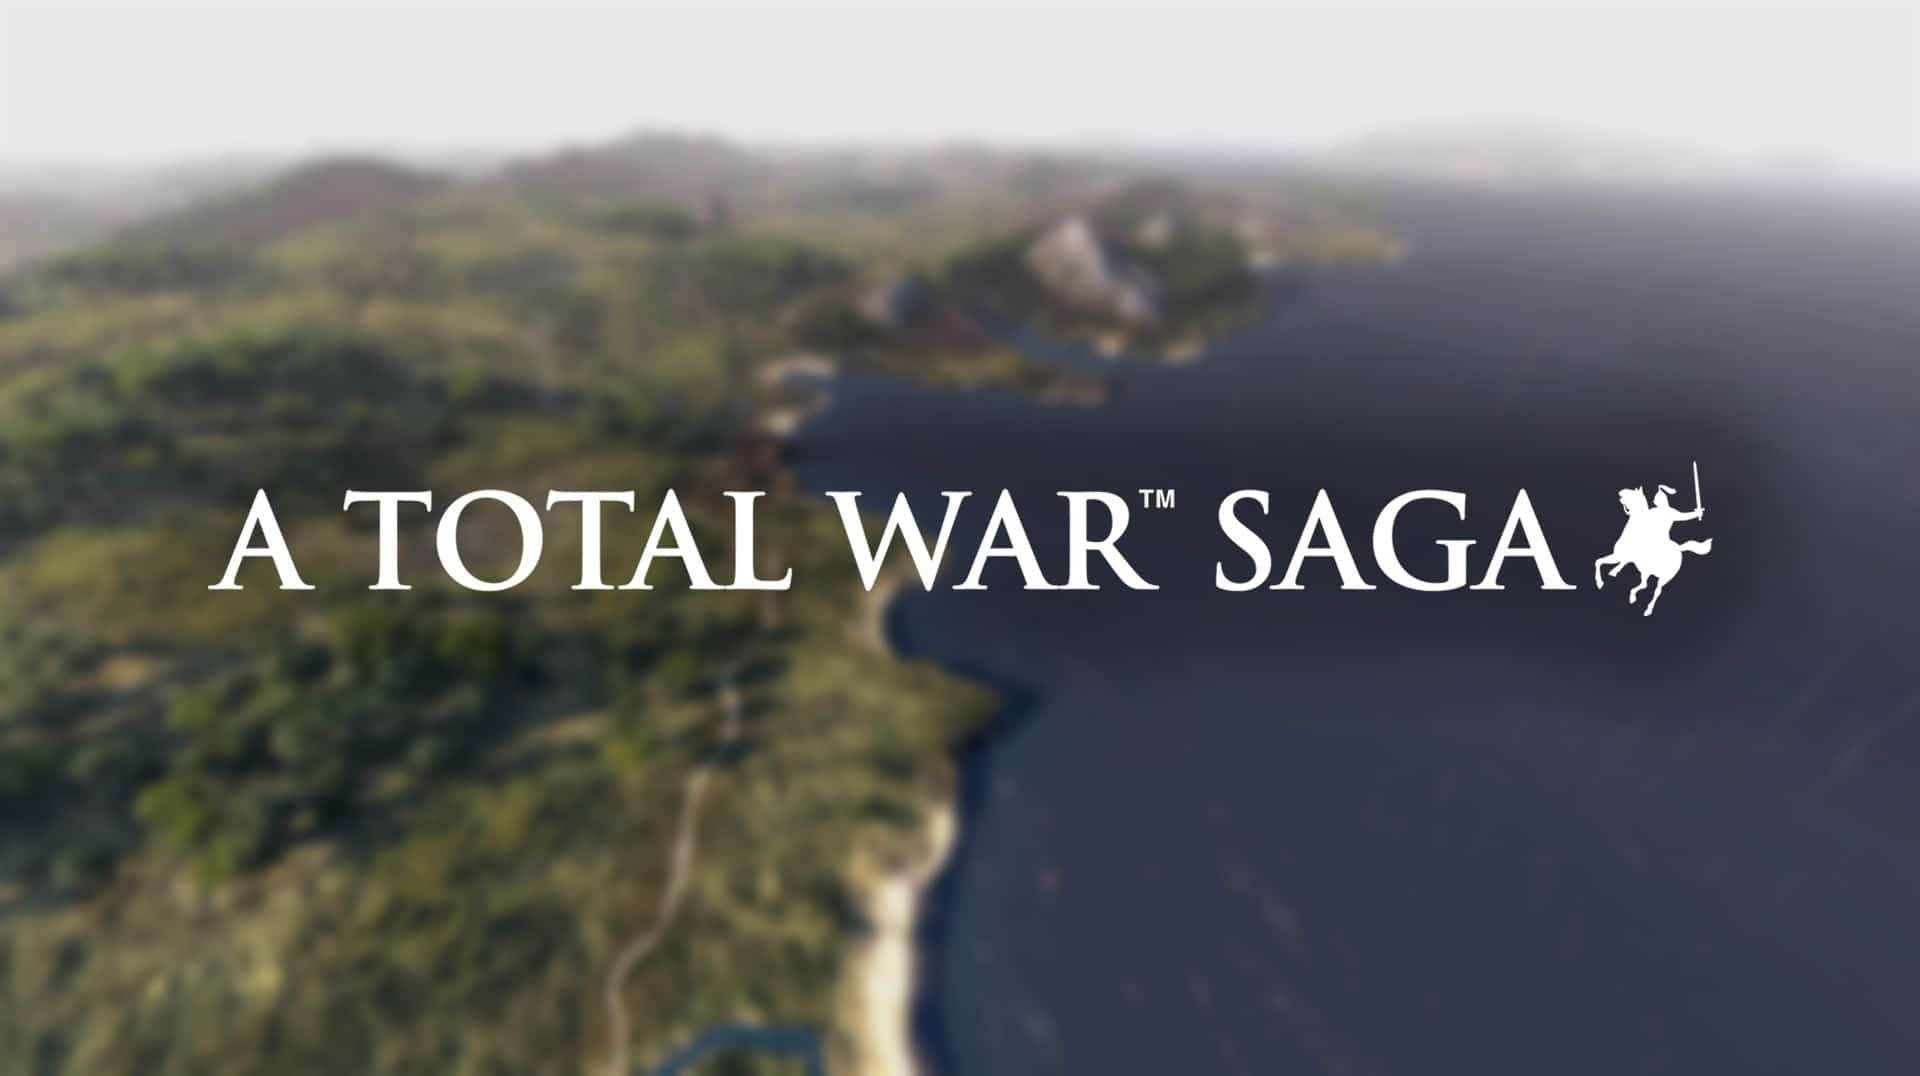 total-war-saga-logo1